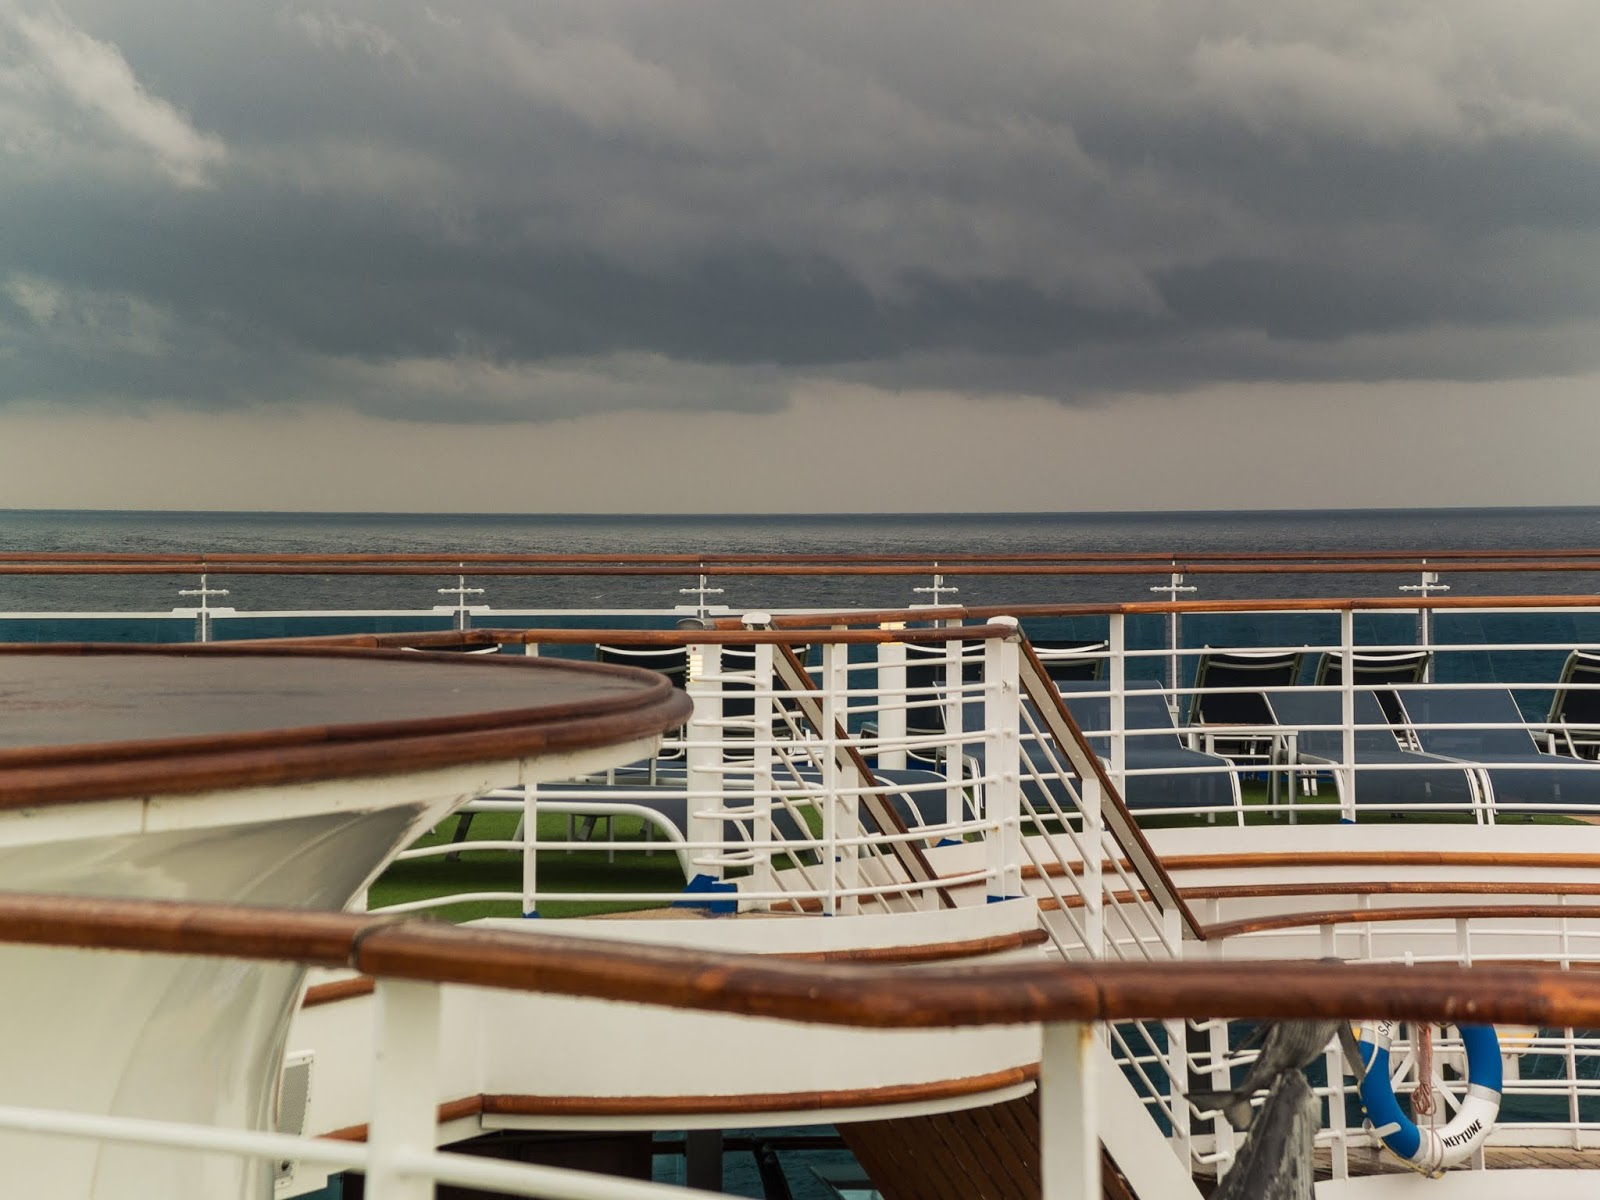 Cloudy skies over an open deck on the Sapphire Princess.